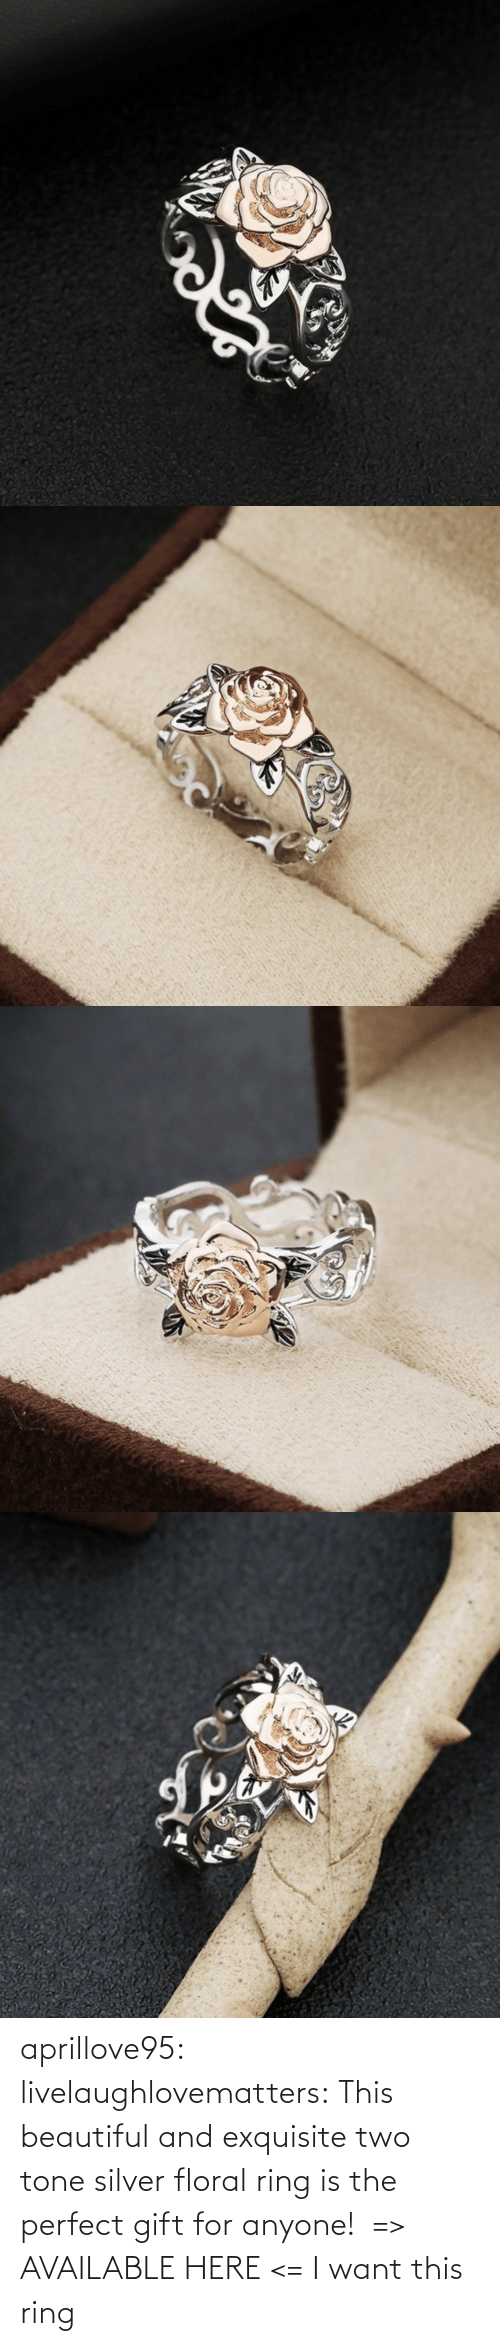 anyone: aprillove95:  livelaughlovematters:  This beautiful and exquisite two tone silver floral ring is the perfect gift for anyone!  => AVAILABLE HERE <=    I want this ring